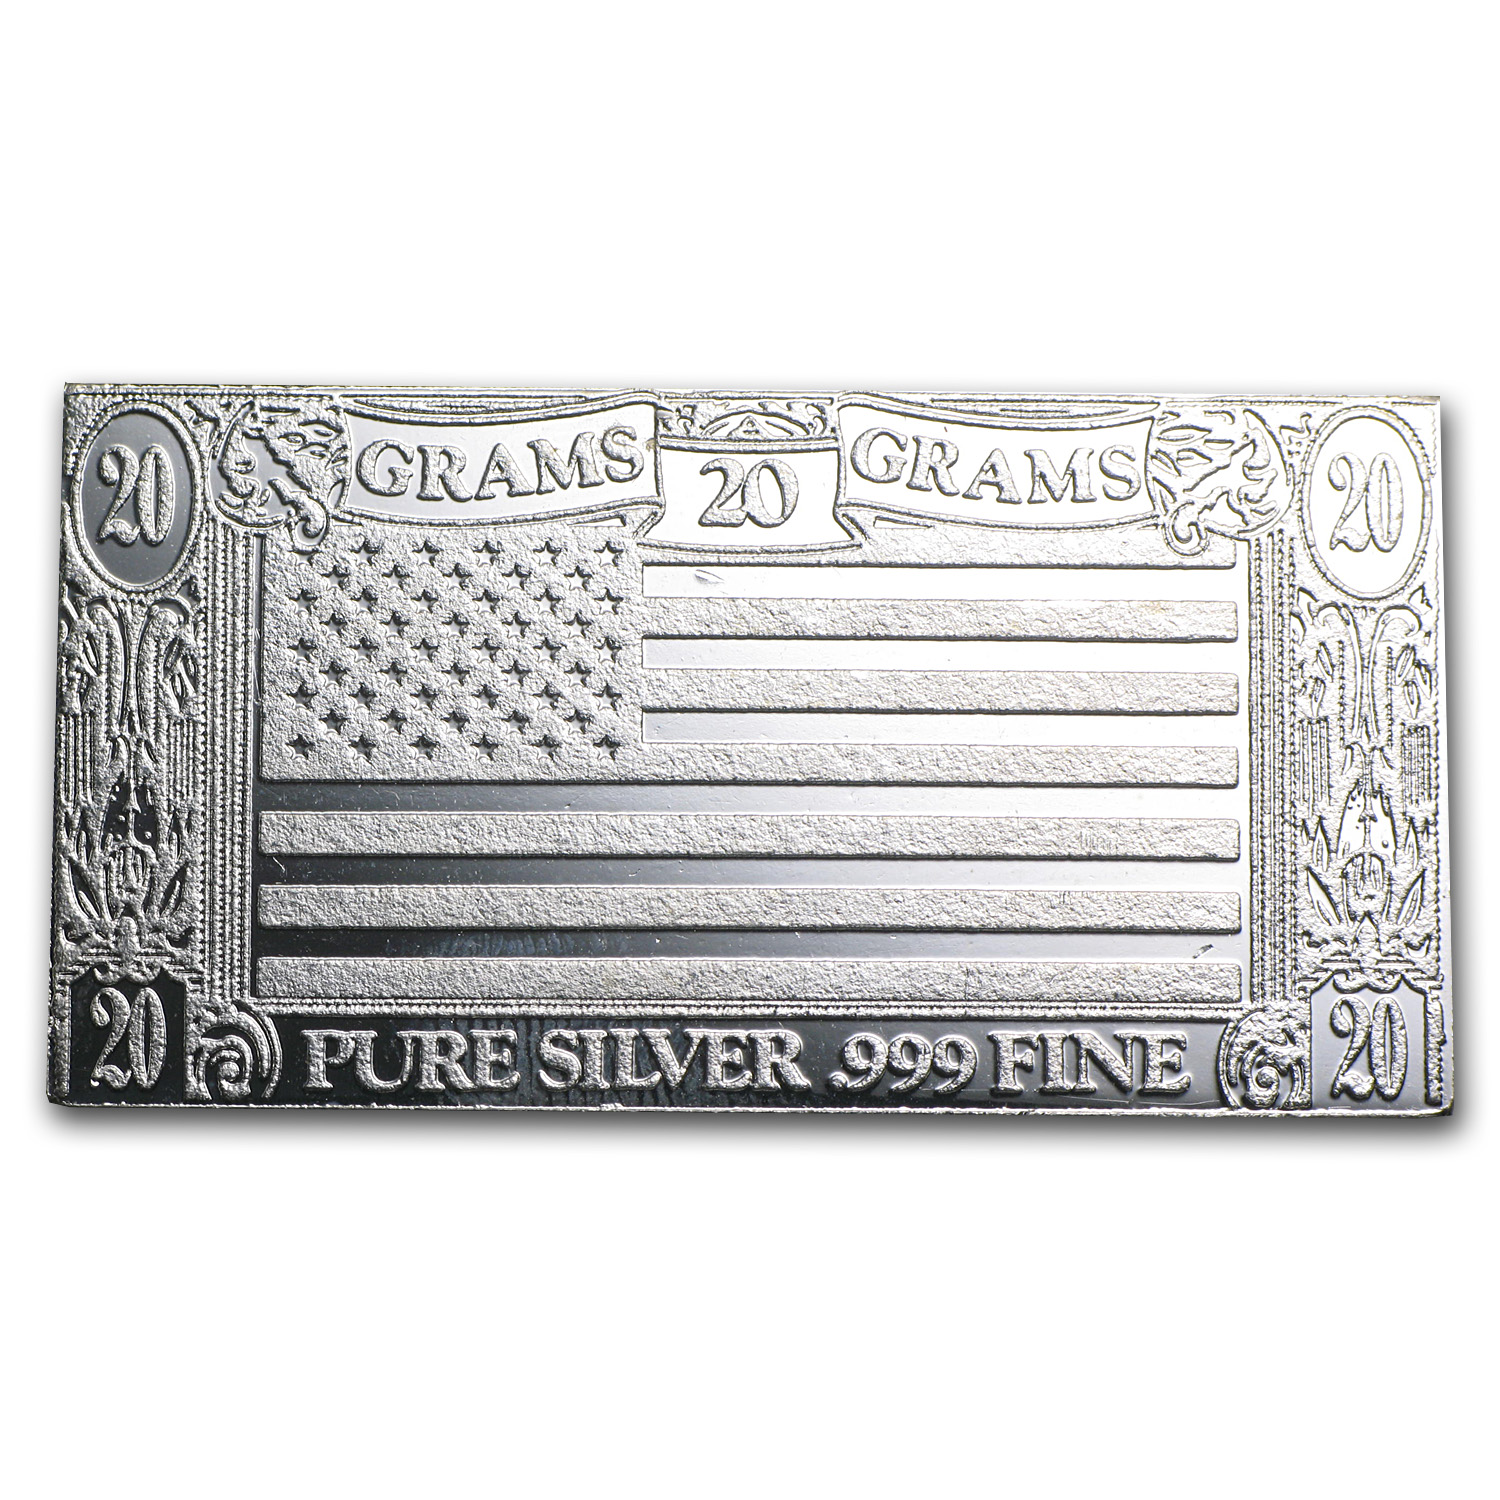 20 gram Silver Bars - Secondary Market